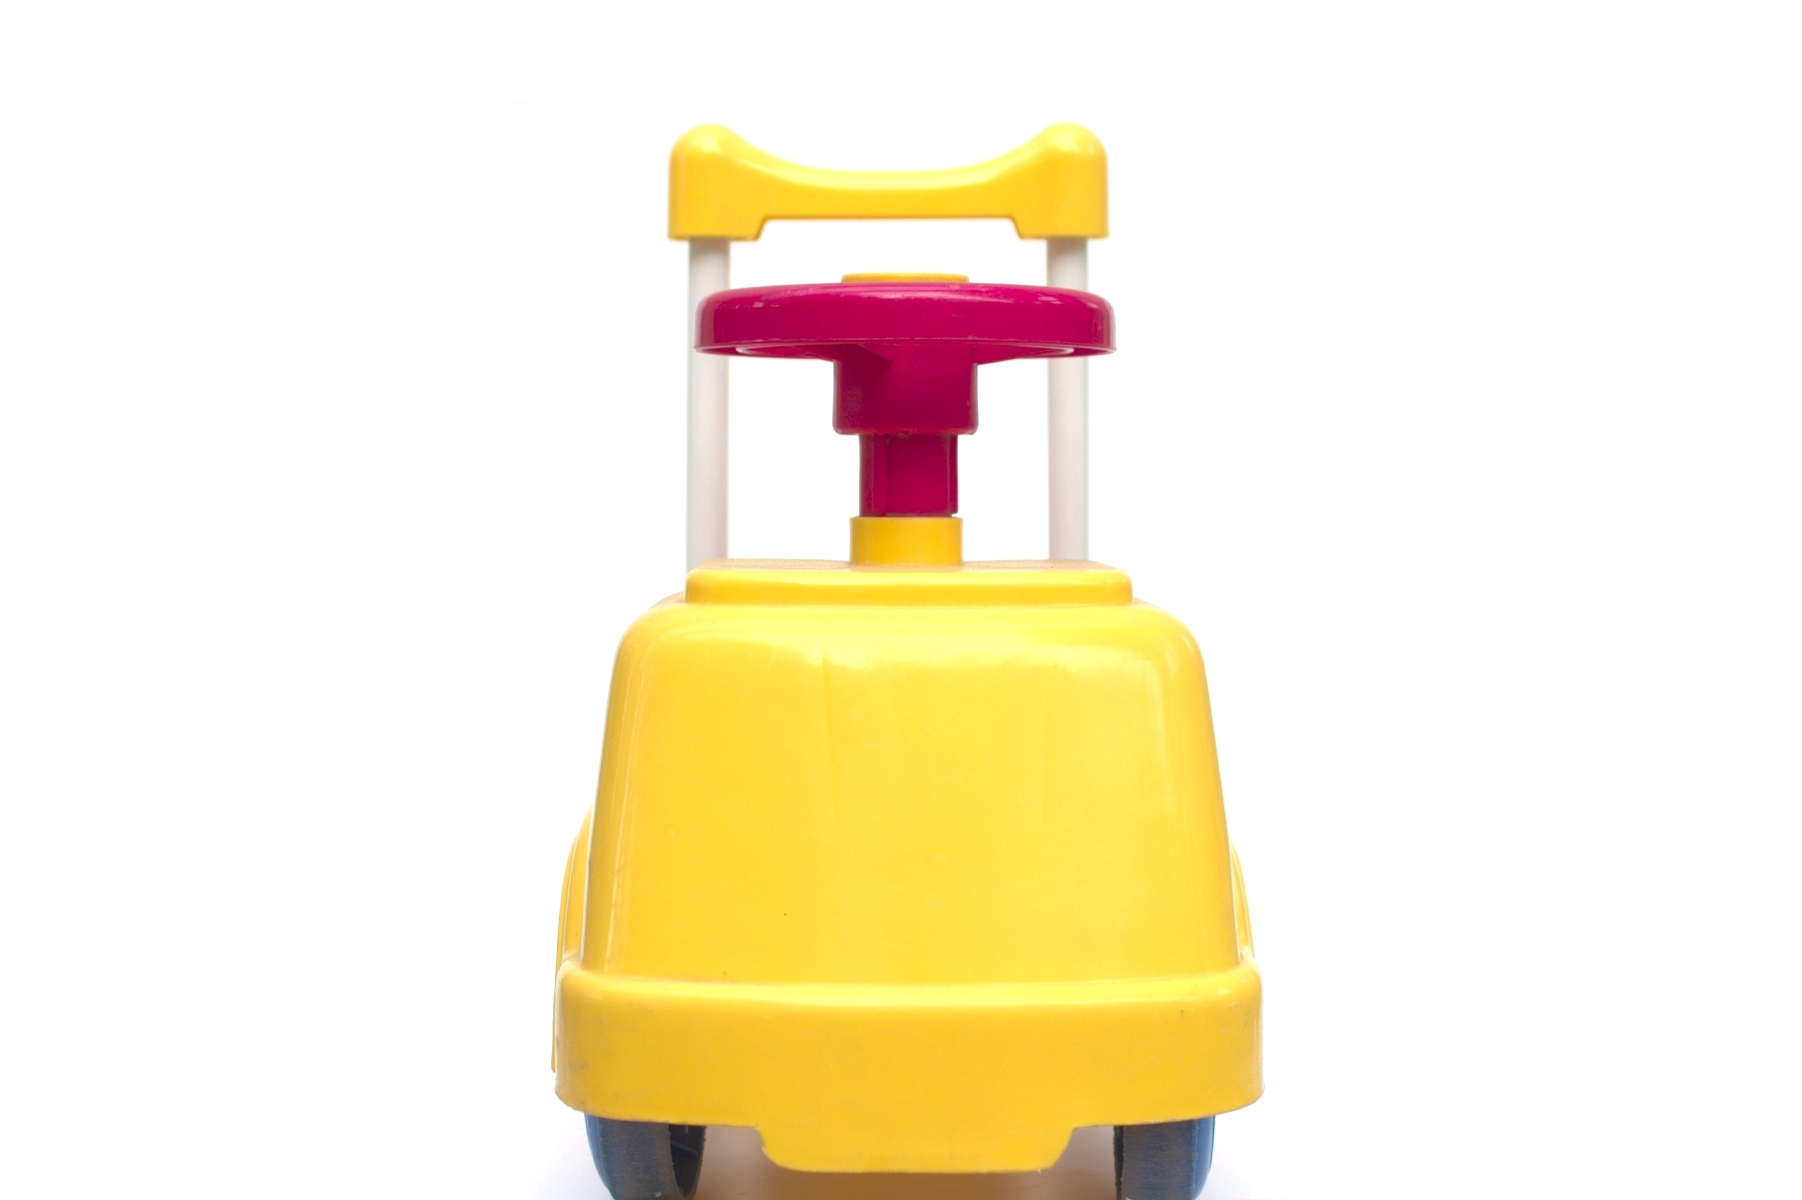 Kids toy car, Activity, Little, Yellow, White, HQ Photo